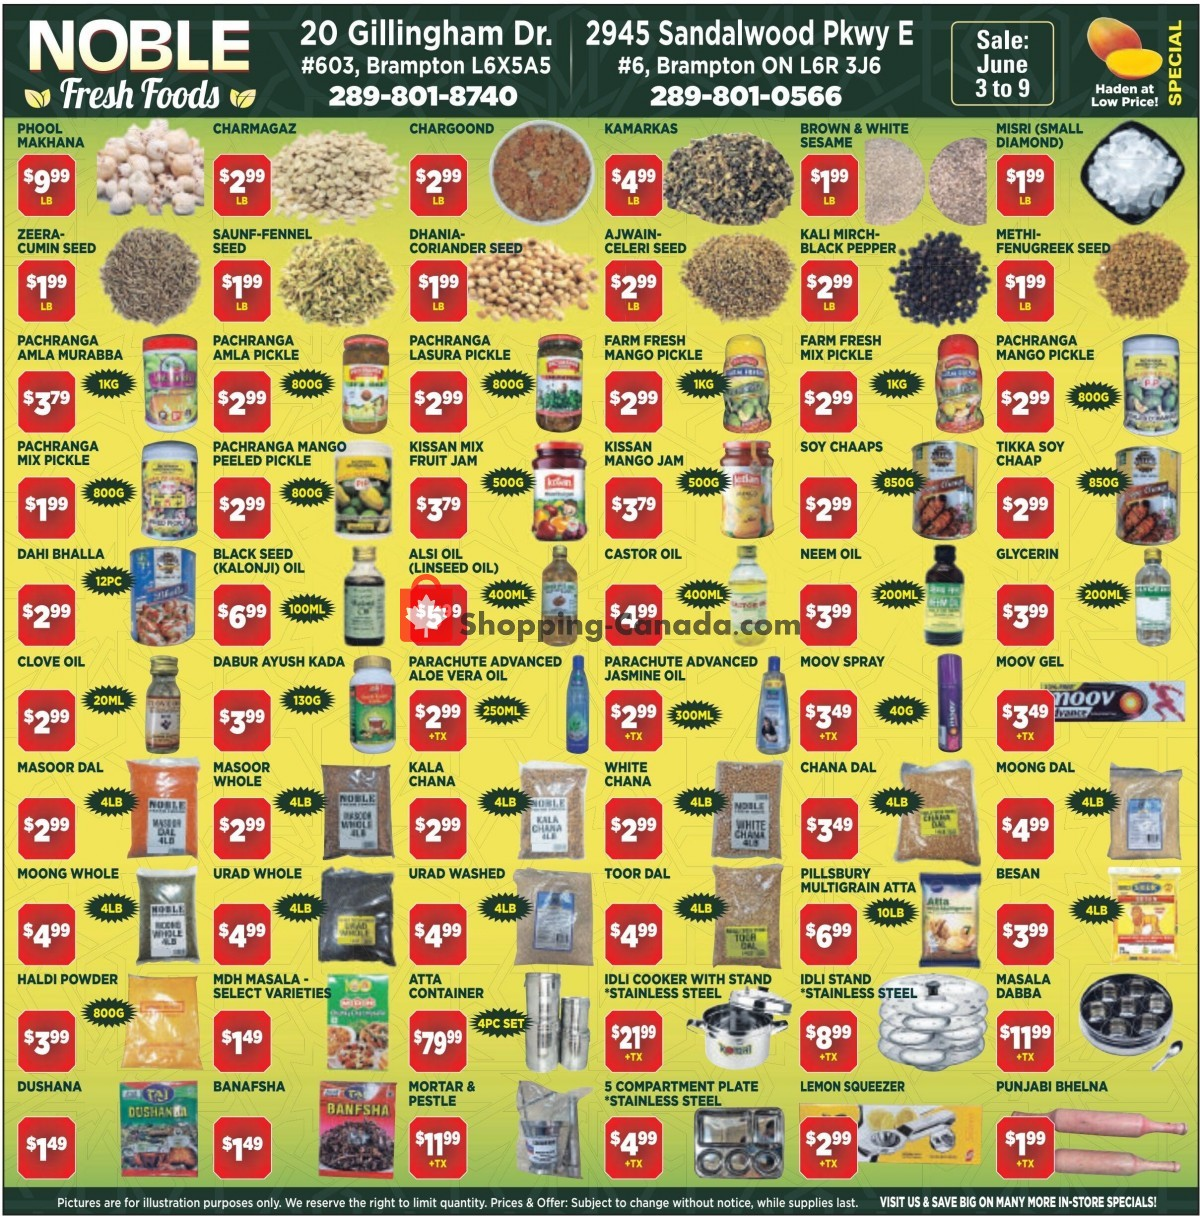 Flyer Noble Fresh Foods Canada - from Thursday June 3, 2021 to Wednesday June 9, 2021